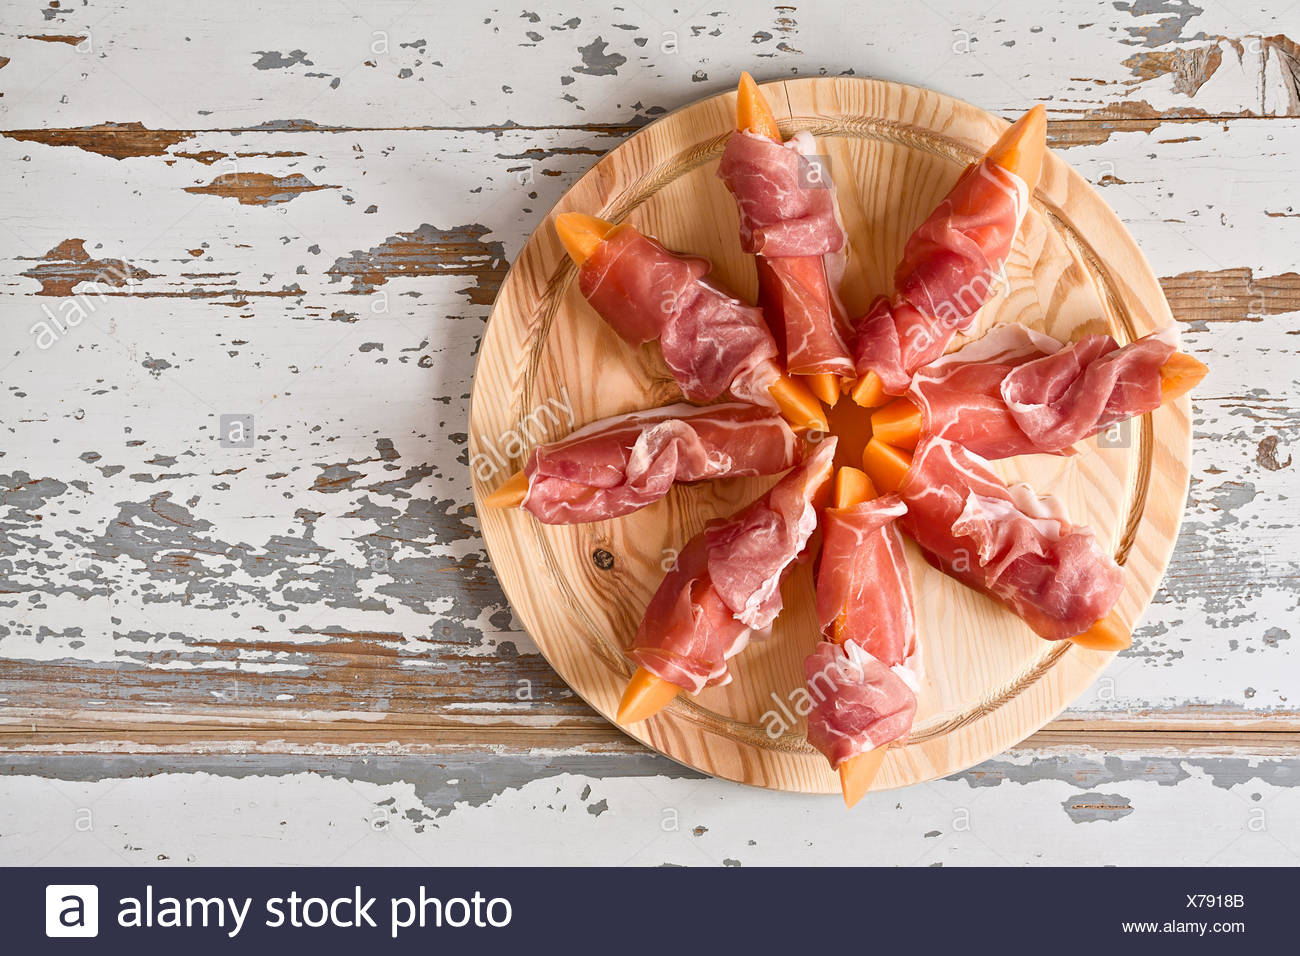 Italian food with prosciutto and melon - Stock Image